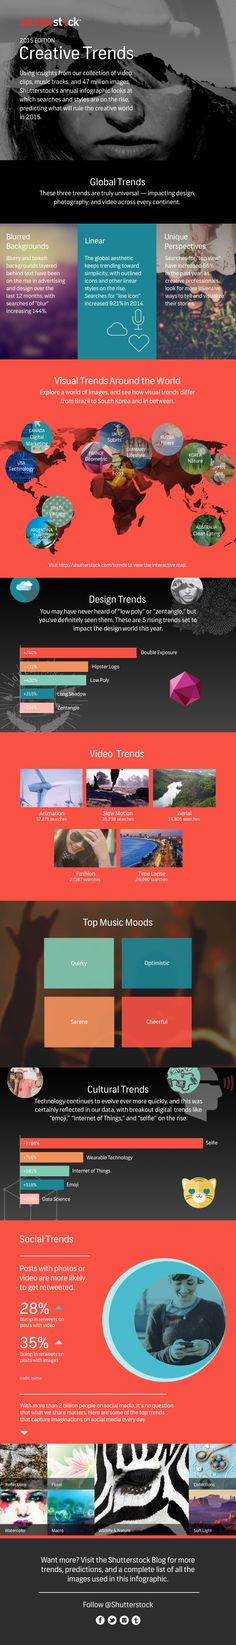 Infographic: explore Shutterstocks 2015 creative trends